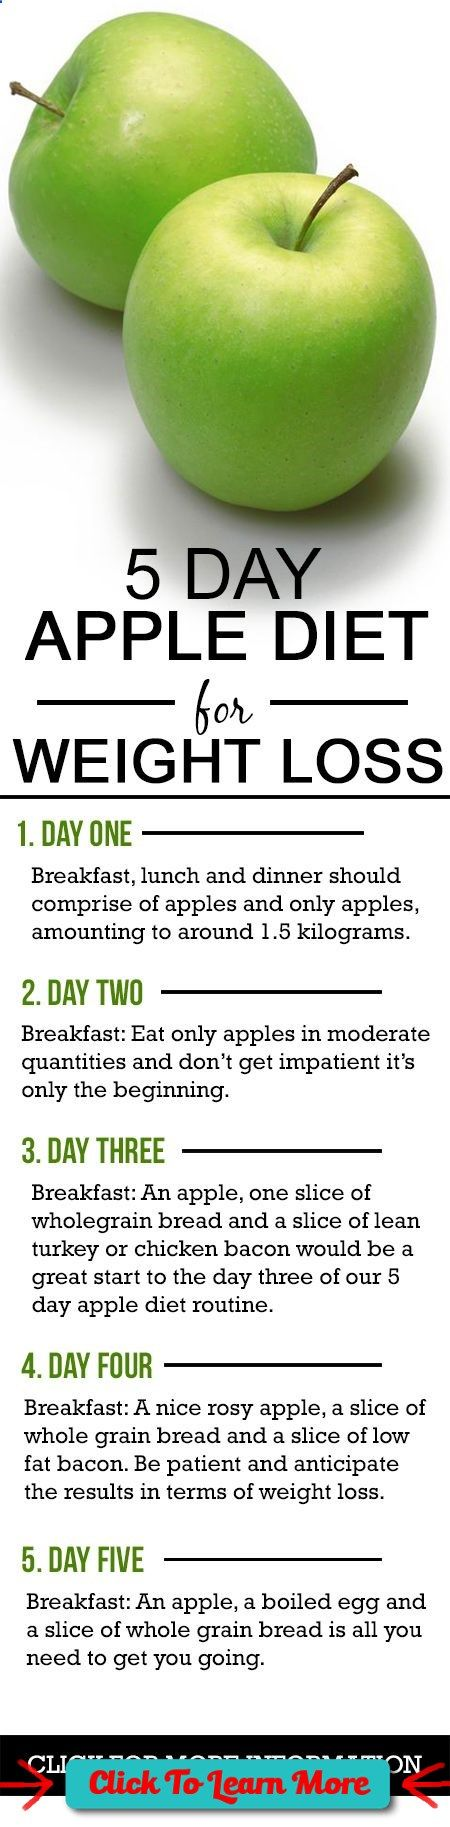 #FastestWayToLoseWeight by EATING, Click to learn more, Want to know why and how the apple diet weight loss works? Read on. , #HealthyRecipes, #FitnessRecipes, #BurnFatRecipes, #WeightLossRecipes, #WeightLossDiets